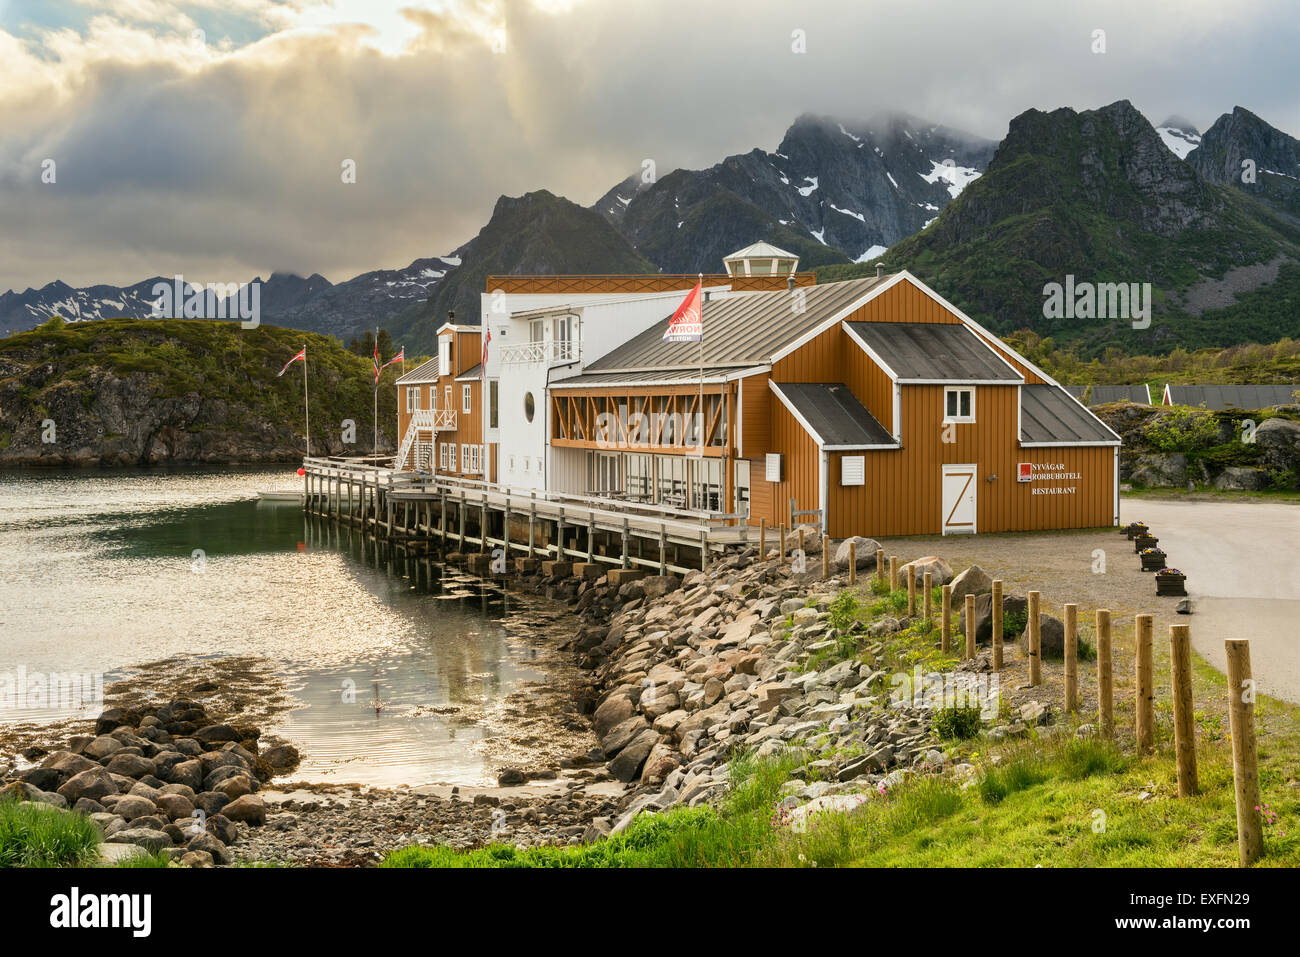 Nyvagar Rorbuhotell in Kabelvag idyllically located at the Lofoten Sea with dramatic clouds at sunset - Stock Image